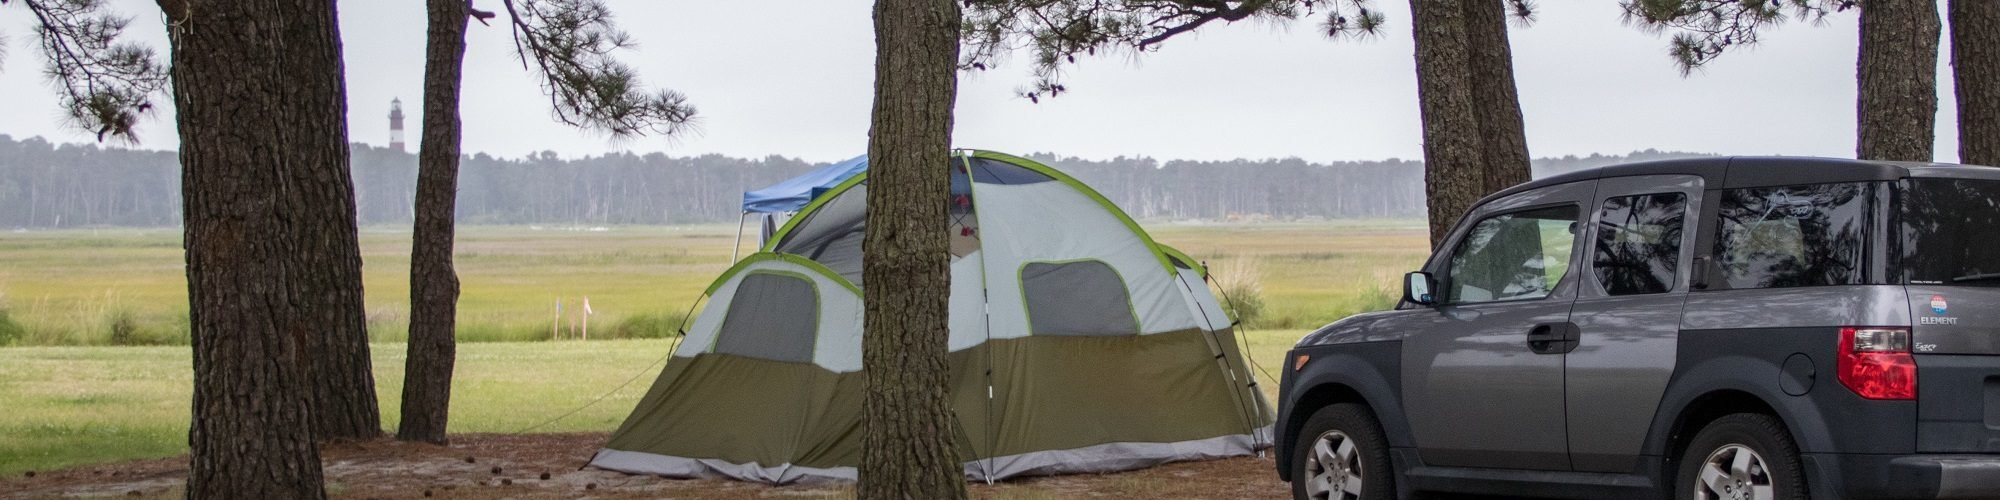 Top 9 Campgrounds on Delmarva | Shorebread